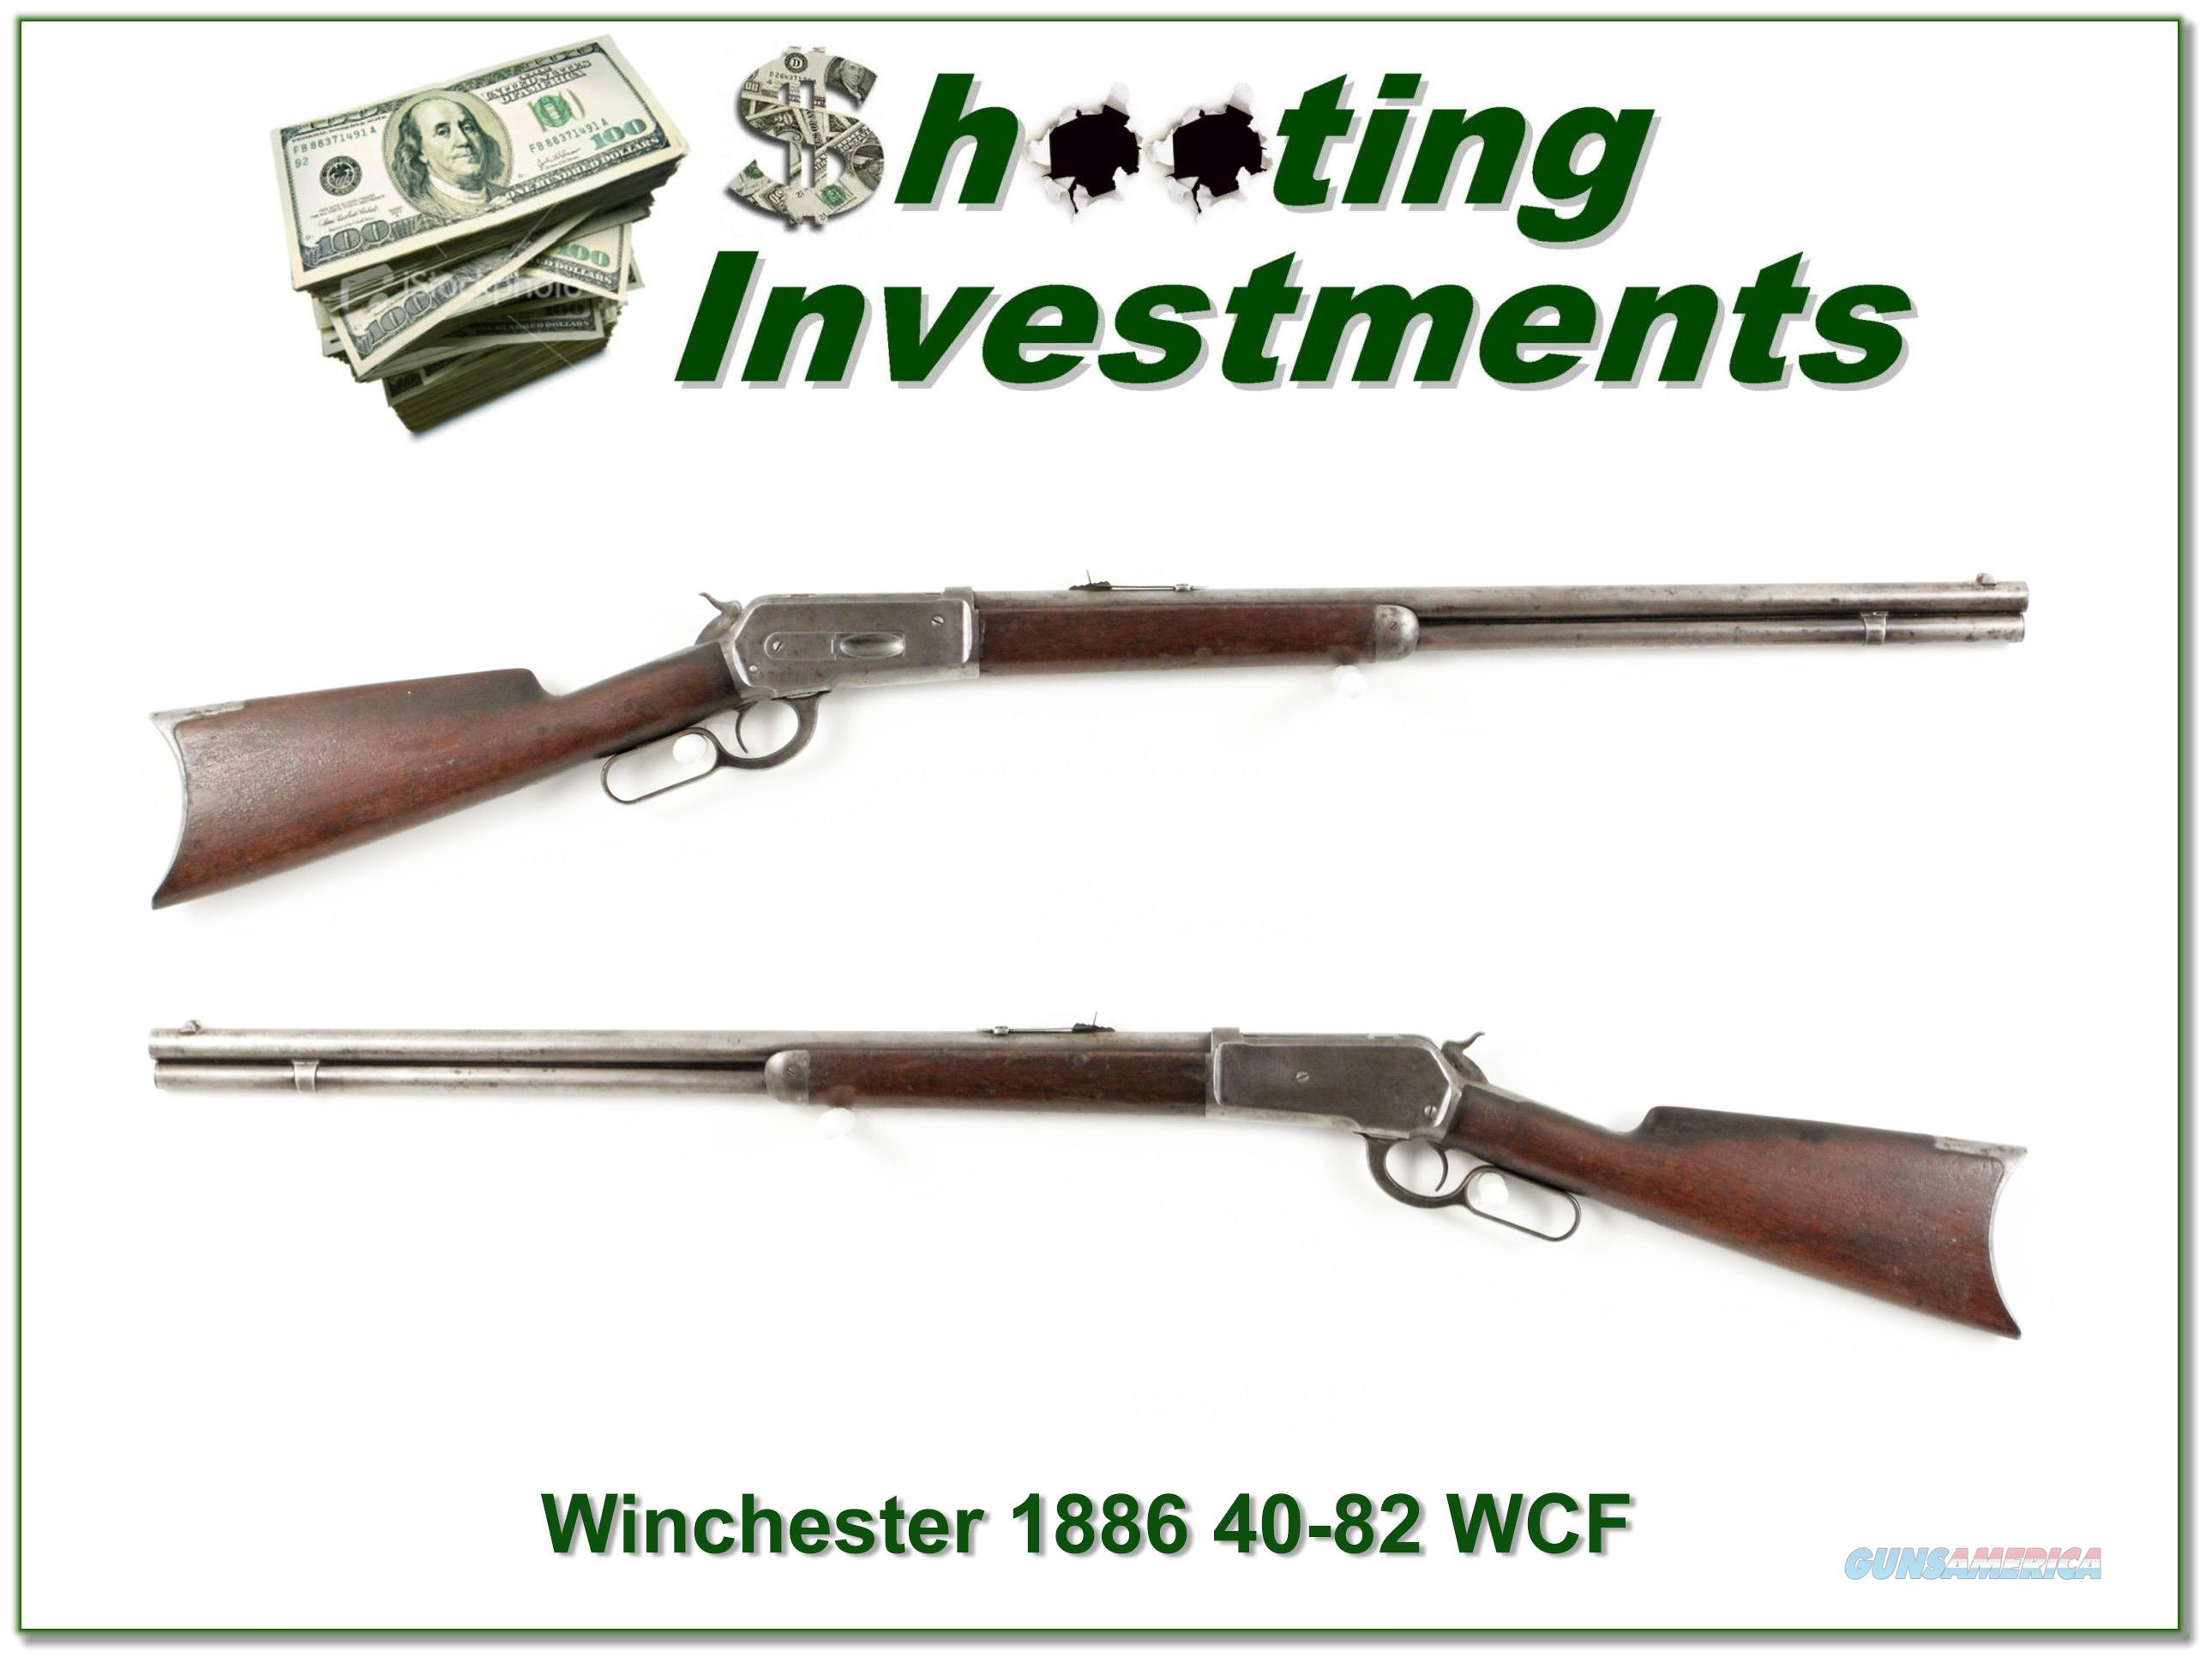 Winchester 1886 made in 1888 rare 40-82 WCF  Guns > Rifles > Winchester Rifles - Modern Lever > Other Lever > Pre-64